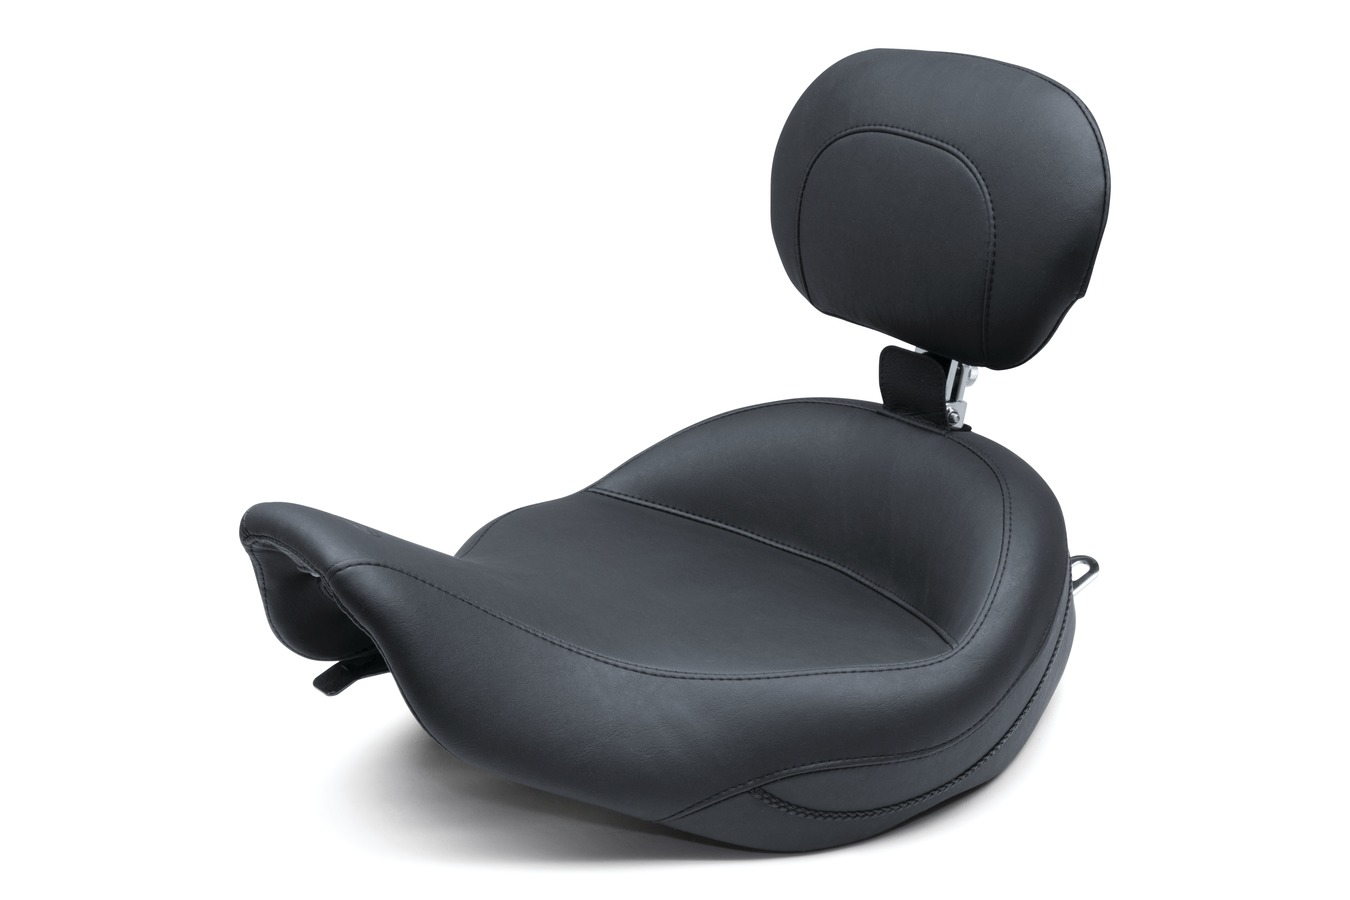 Super Touring Solo Seat with Driver Backrest, Original, Black